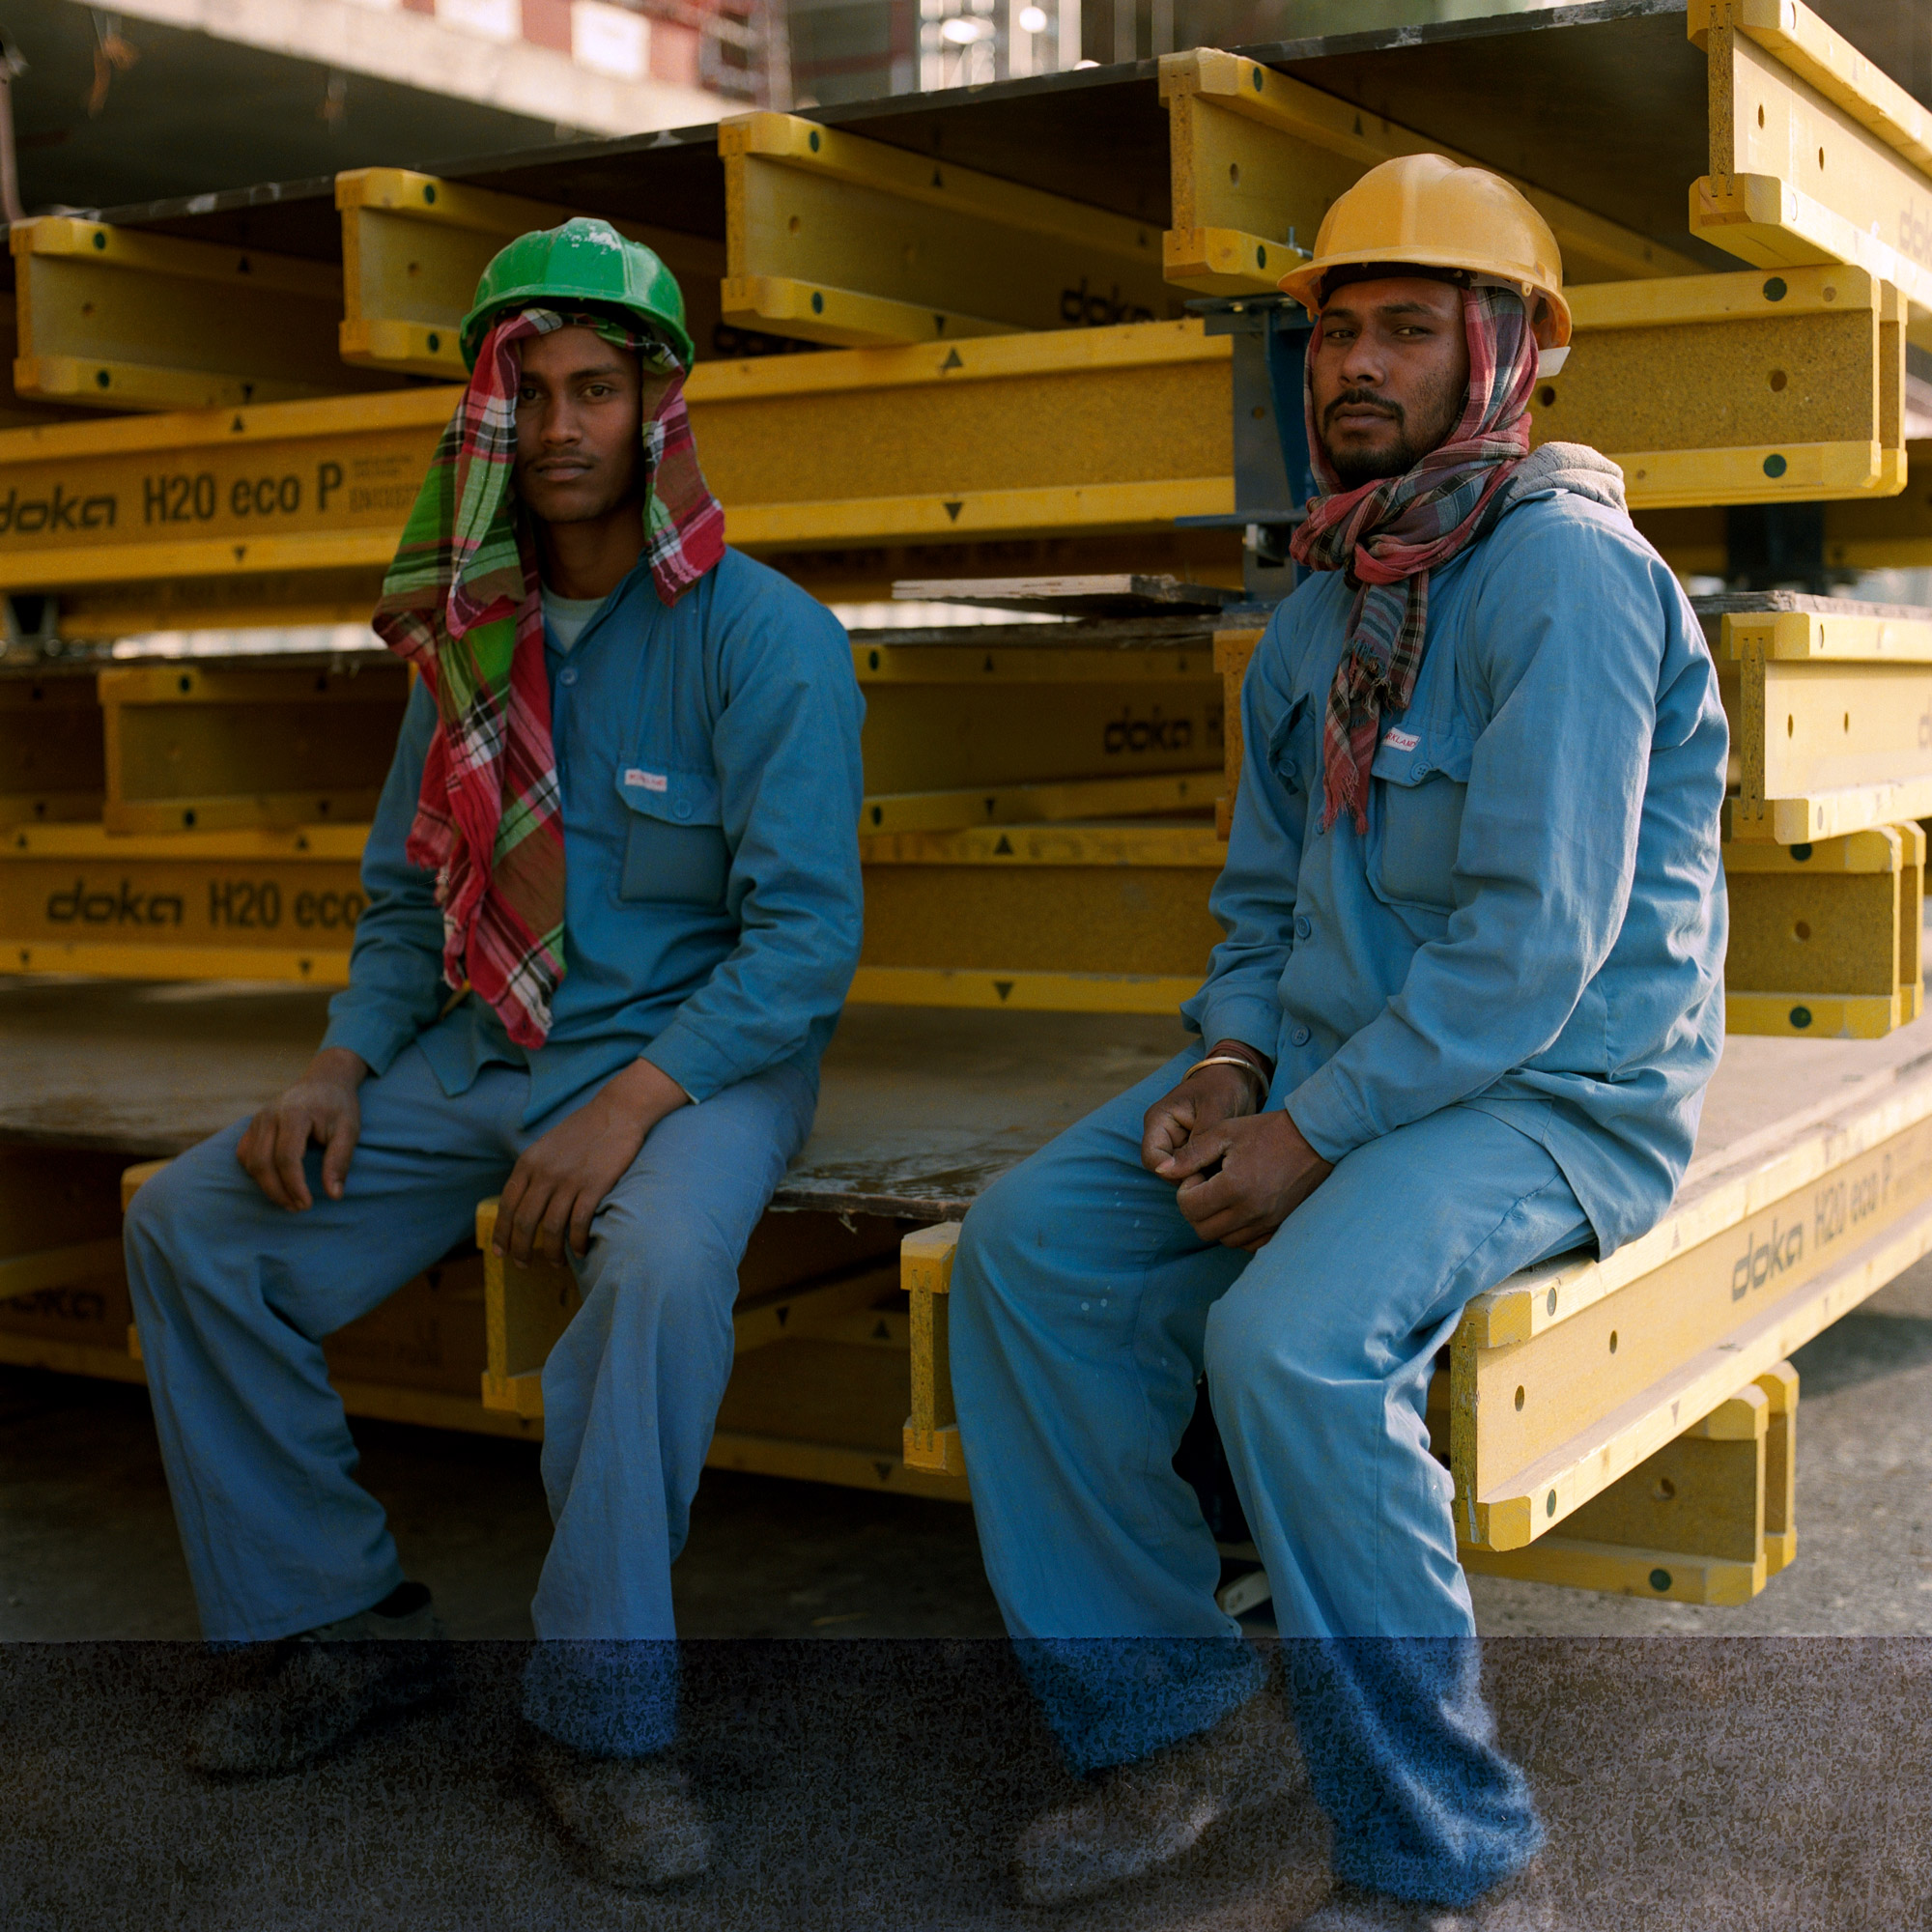 Two Indian construction workers wearing hard hats, workwear, sitting on steal beams in Dubai, Dubai Labourers